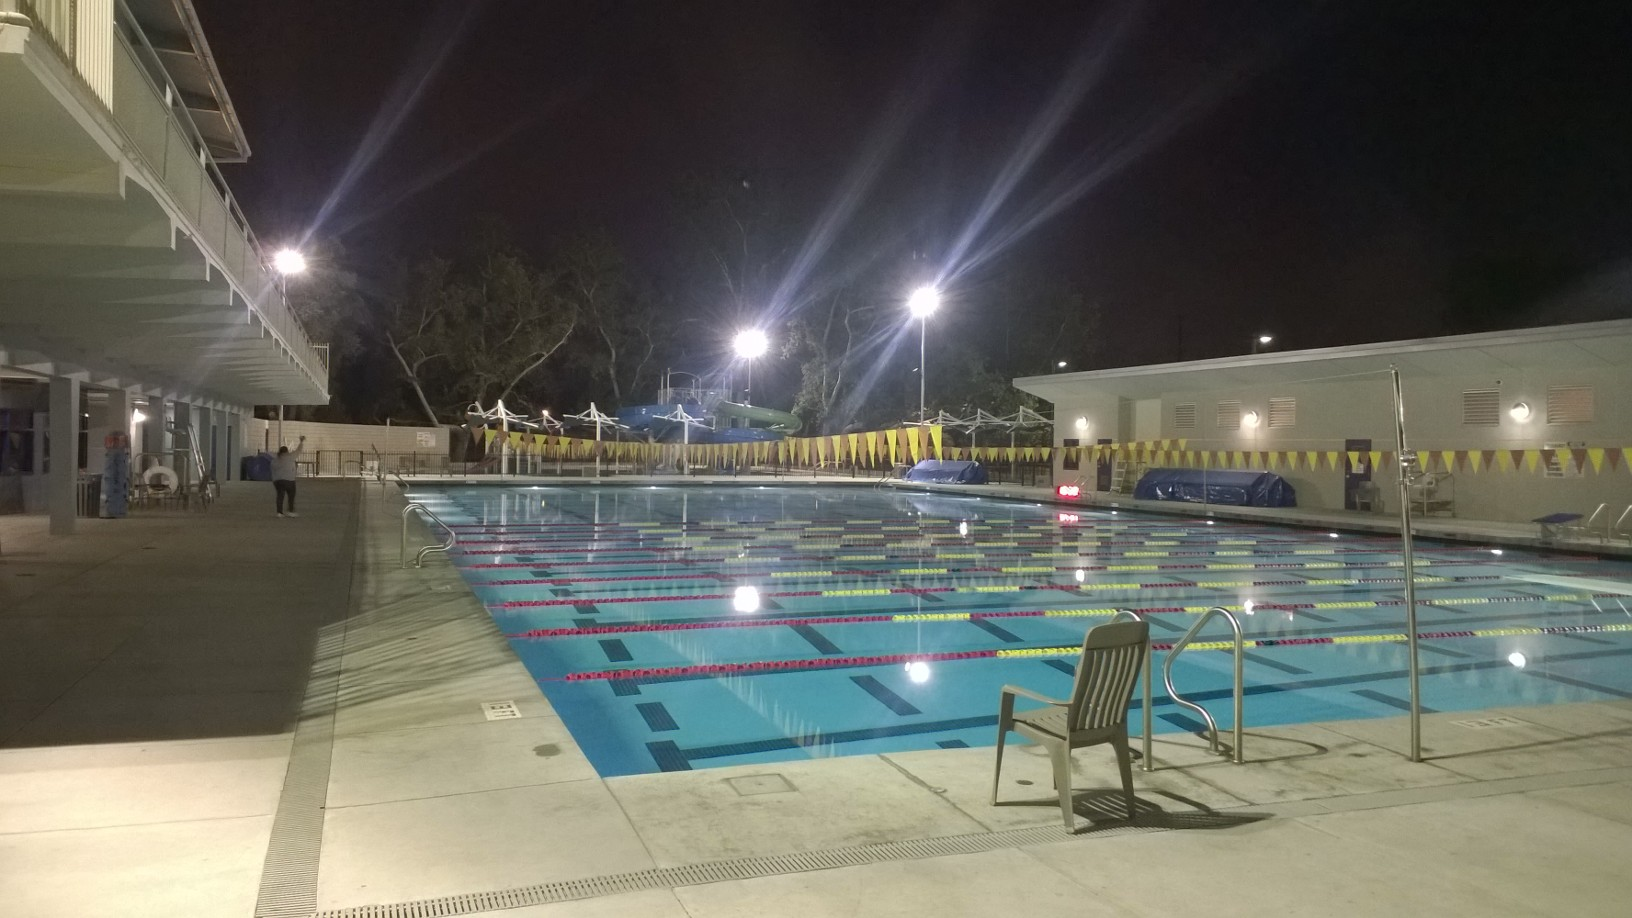 0163 - Verdugo Aquatic Center (Burbank)